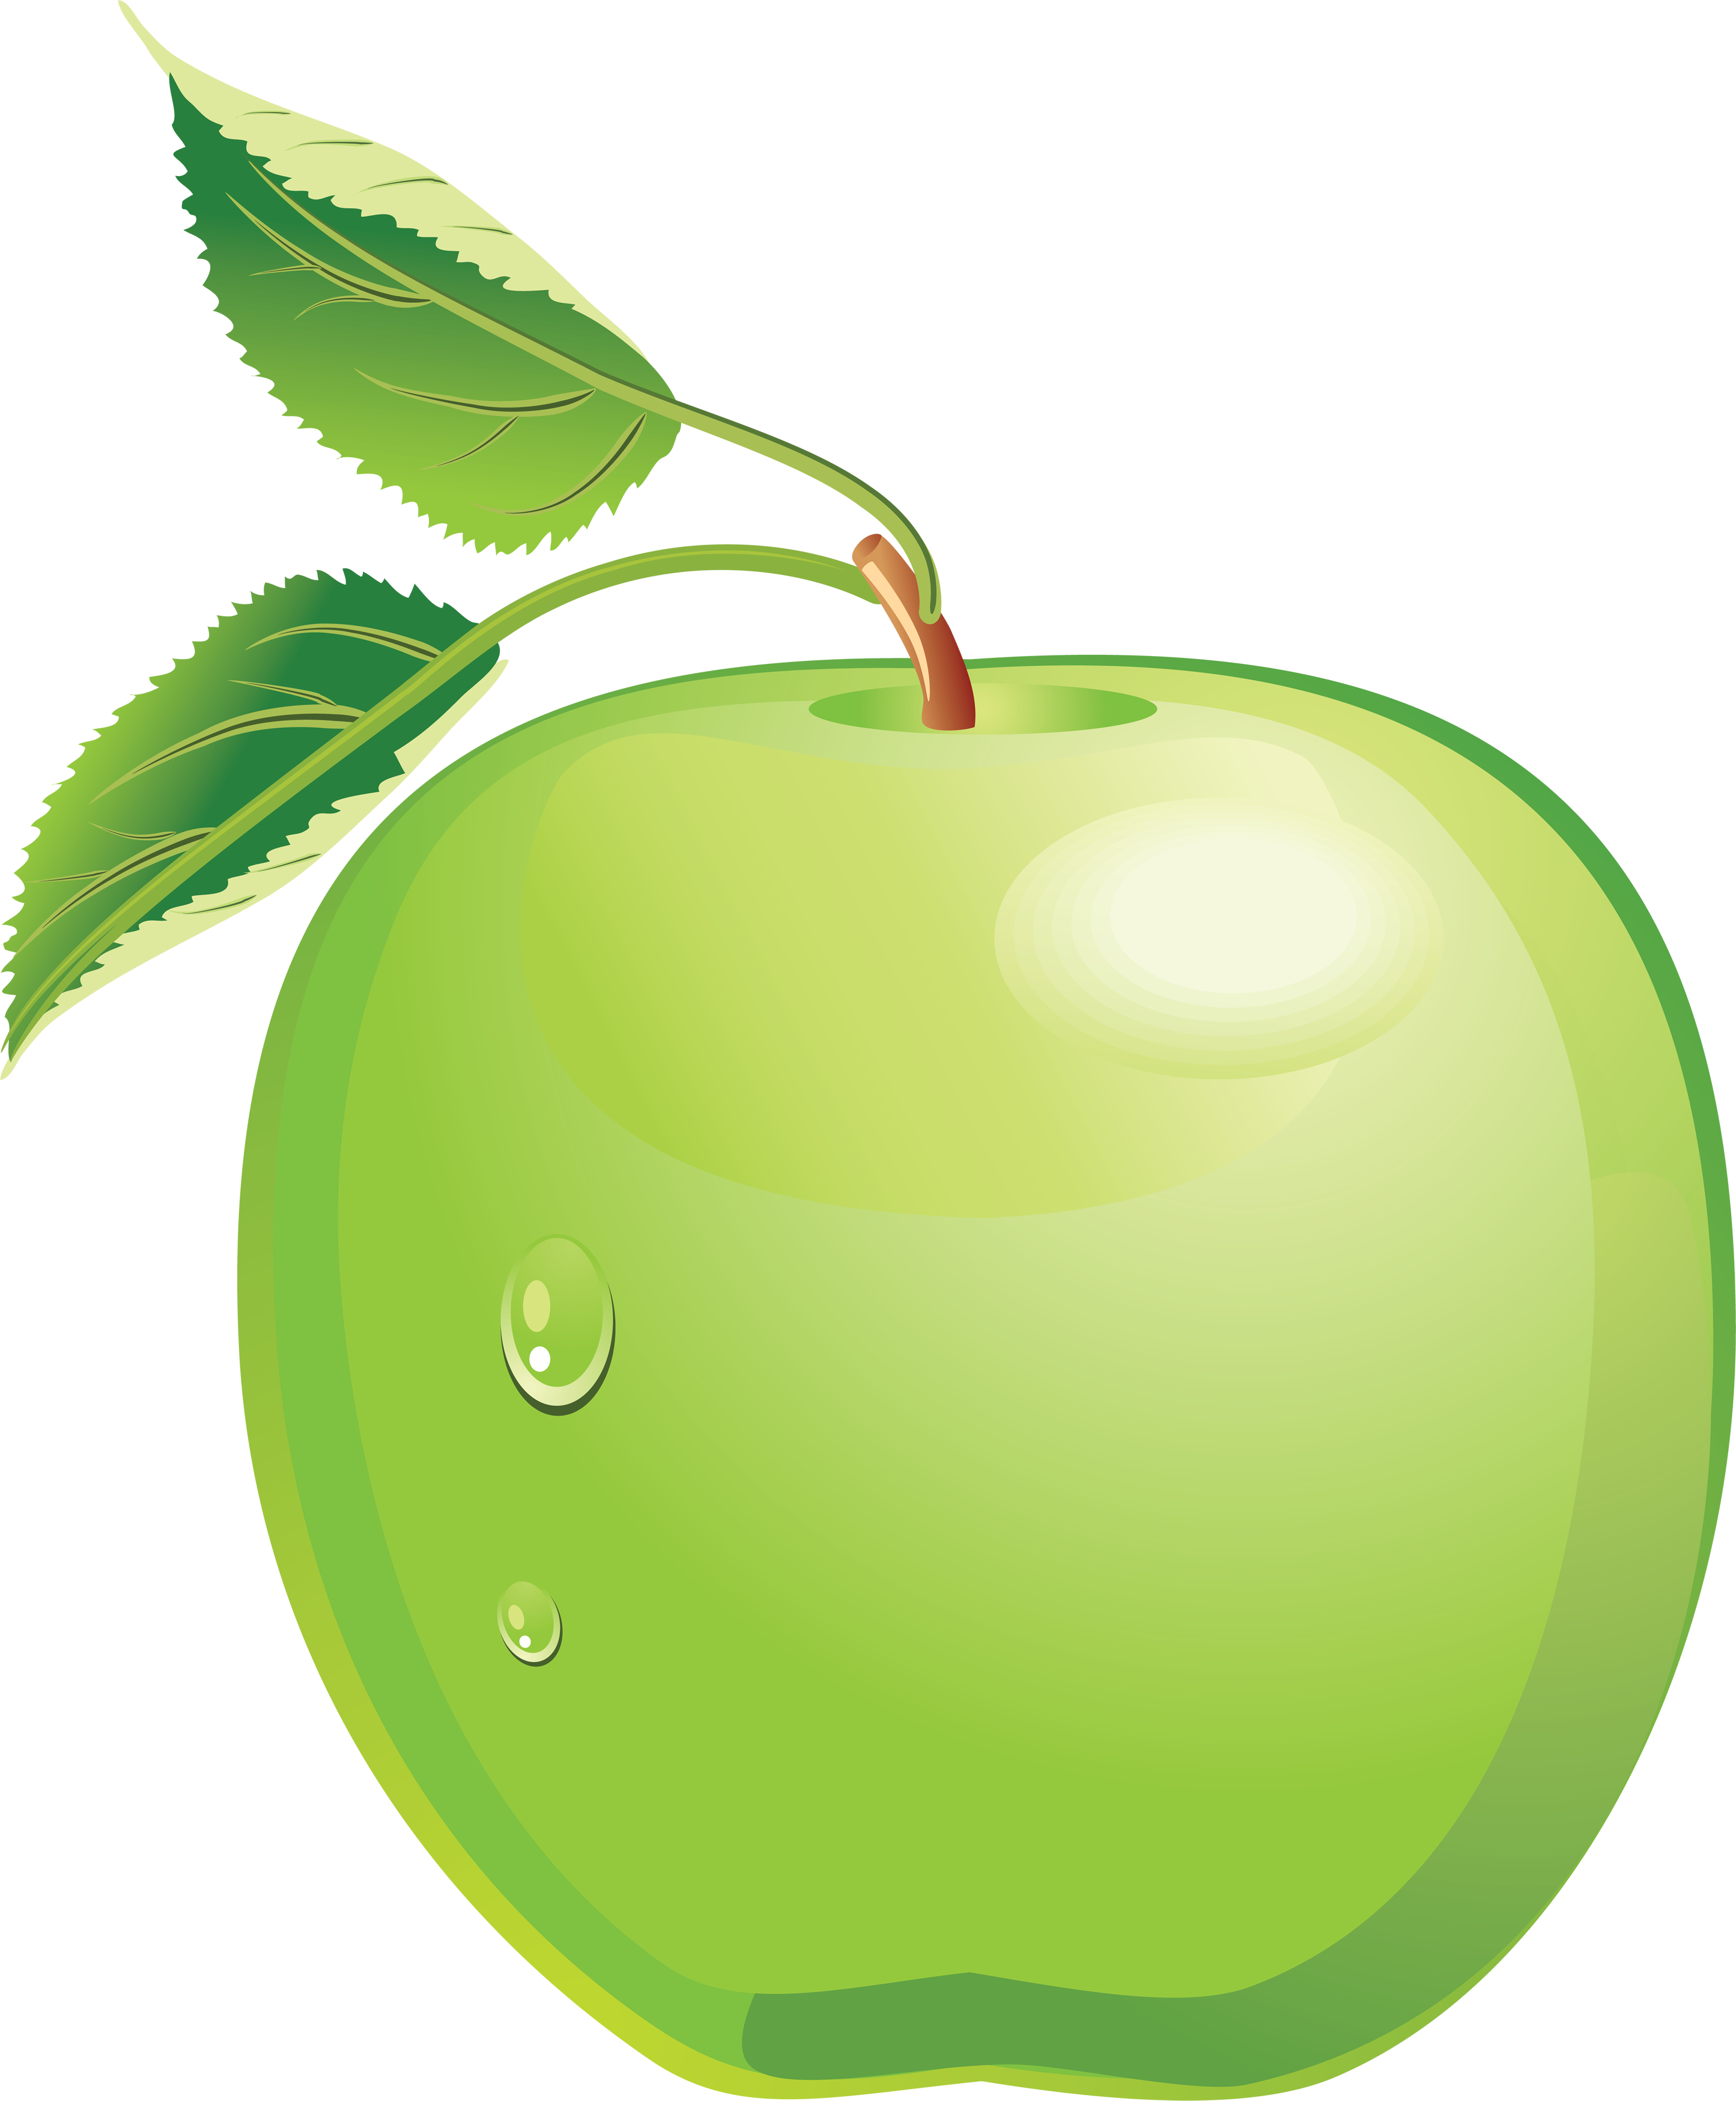 Green Apple Clip Art.